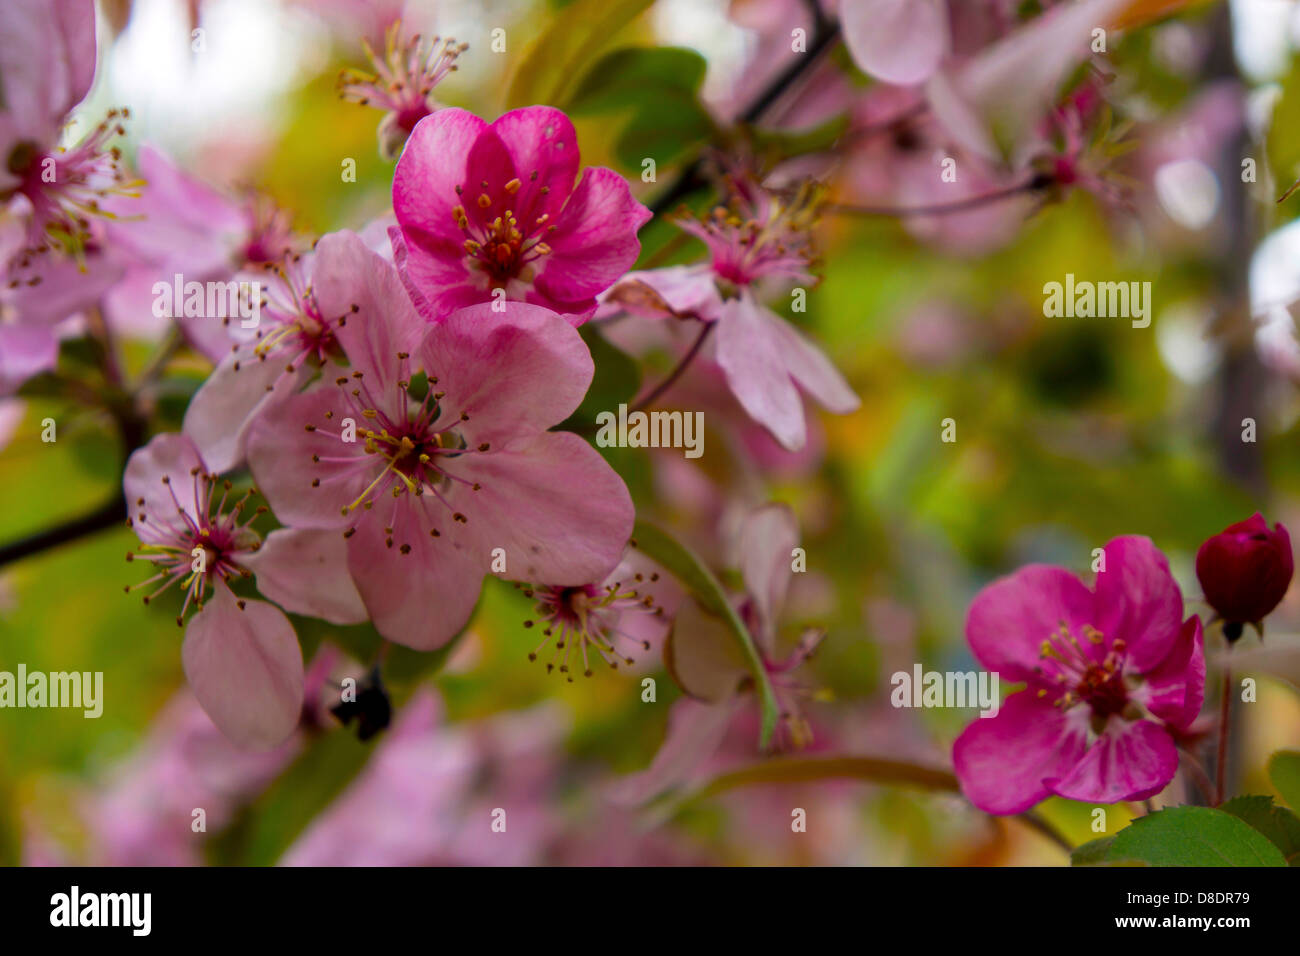 Pink Apple Blossom Stock Photos & Pink Apple Blossom Stock ...